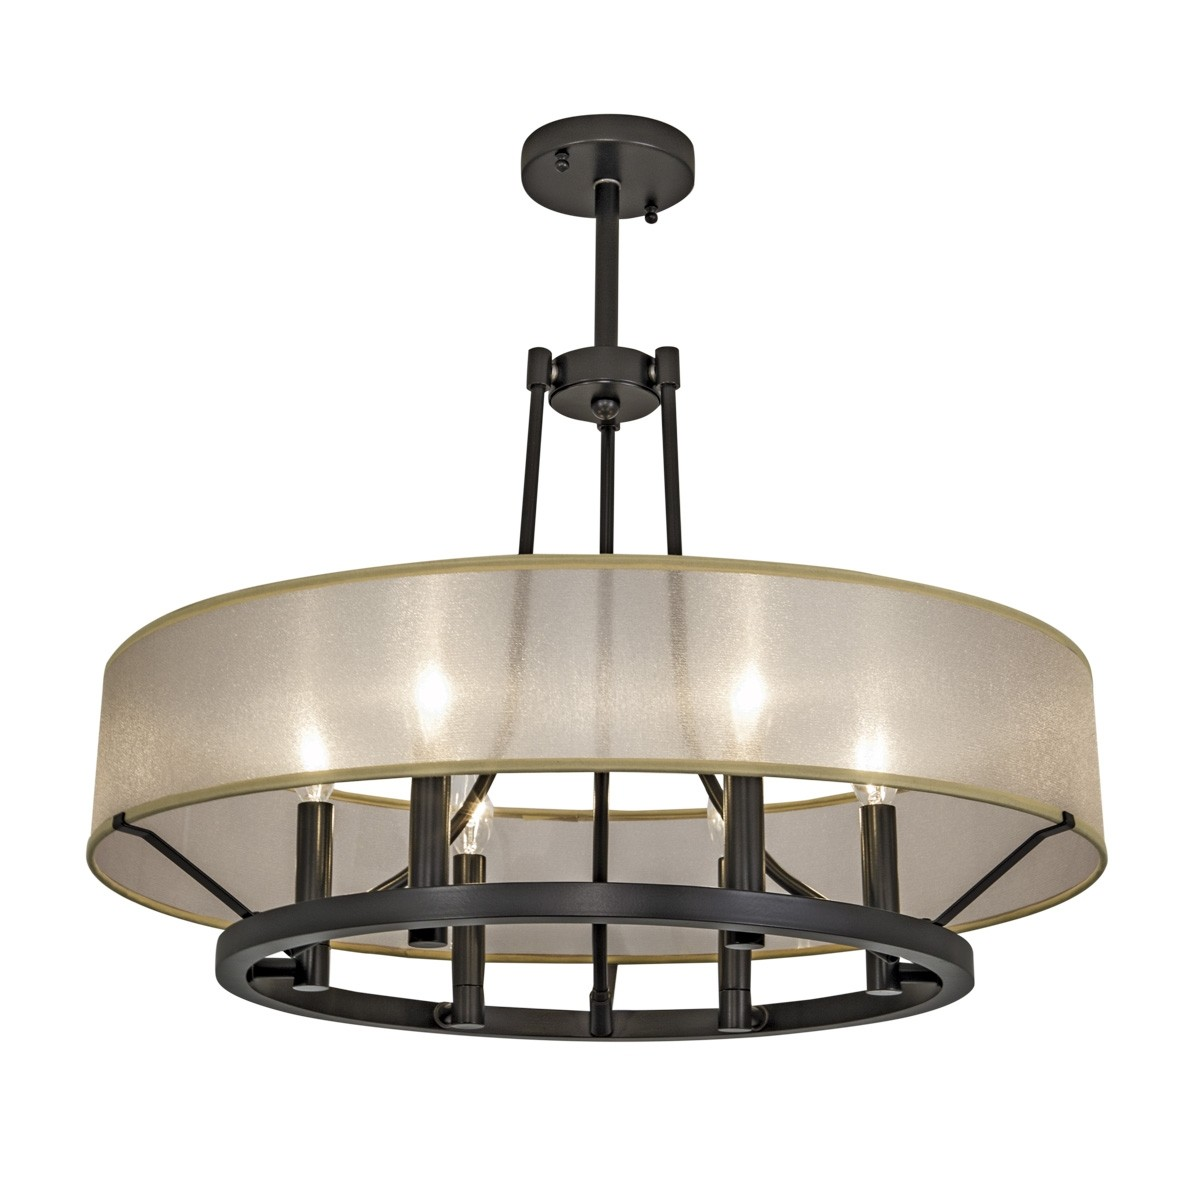 Ghost Chandelier By Norwell Lighting 5224 Abpc Oz